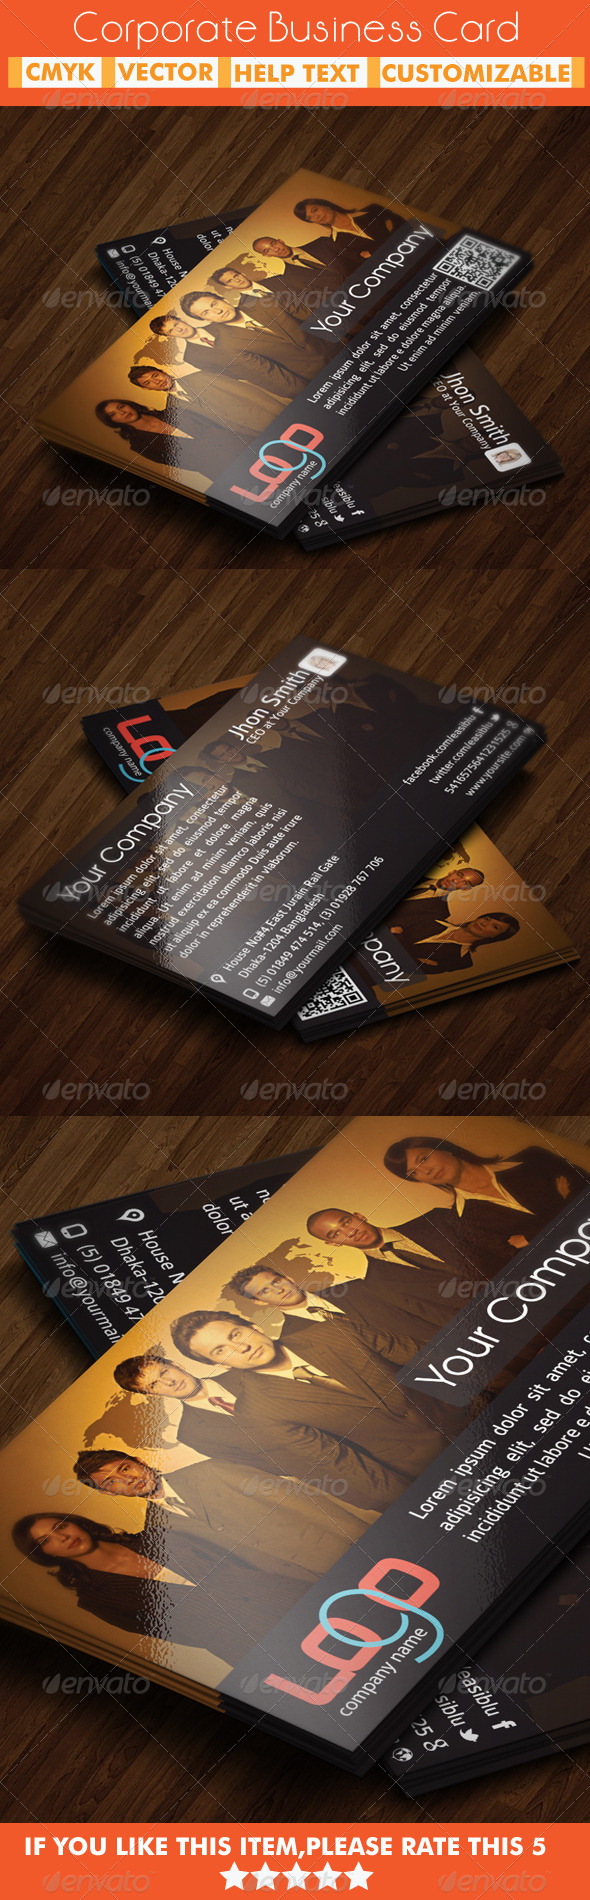 GraphicRiver Corporate Business Card 5438630